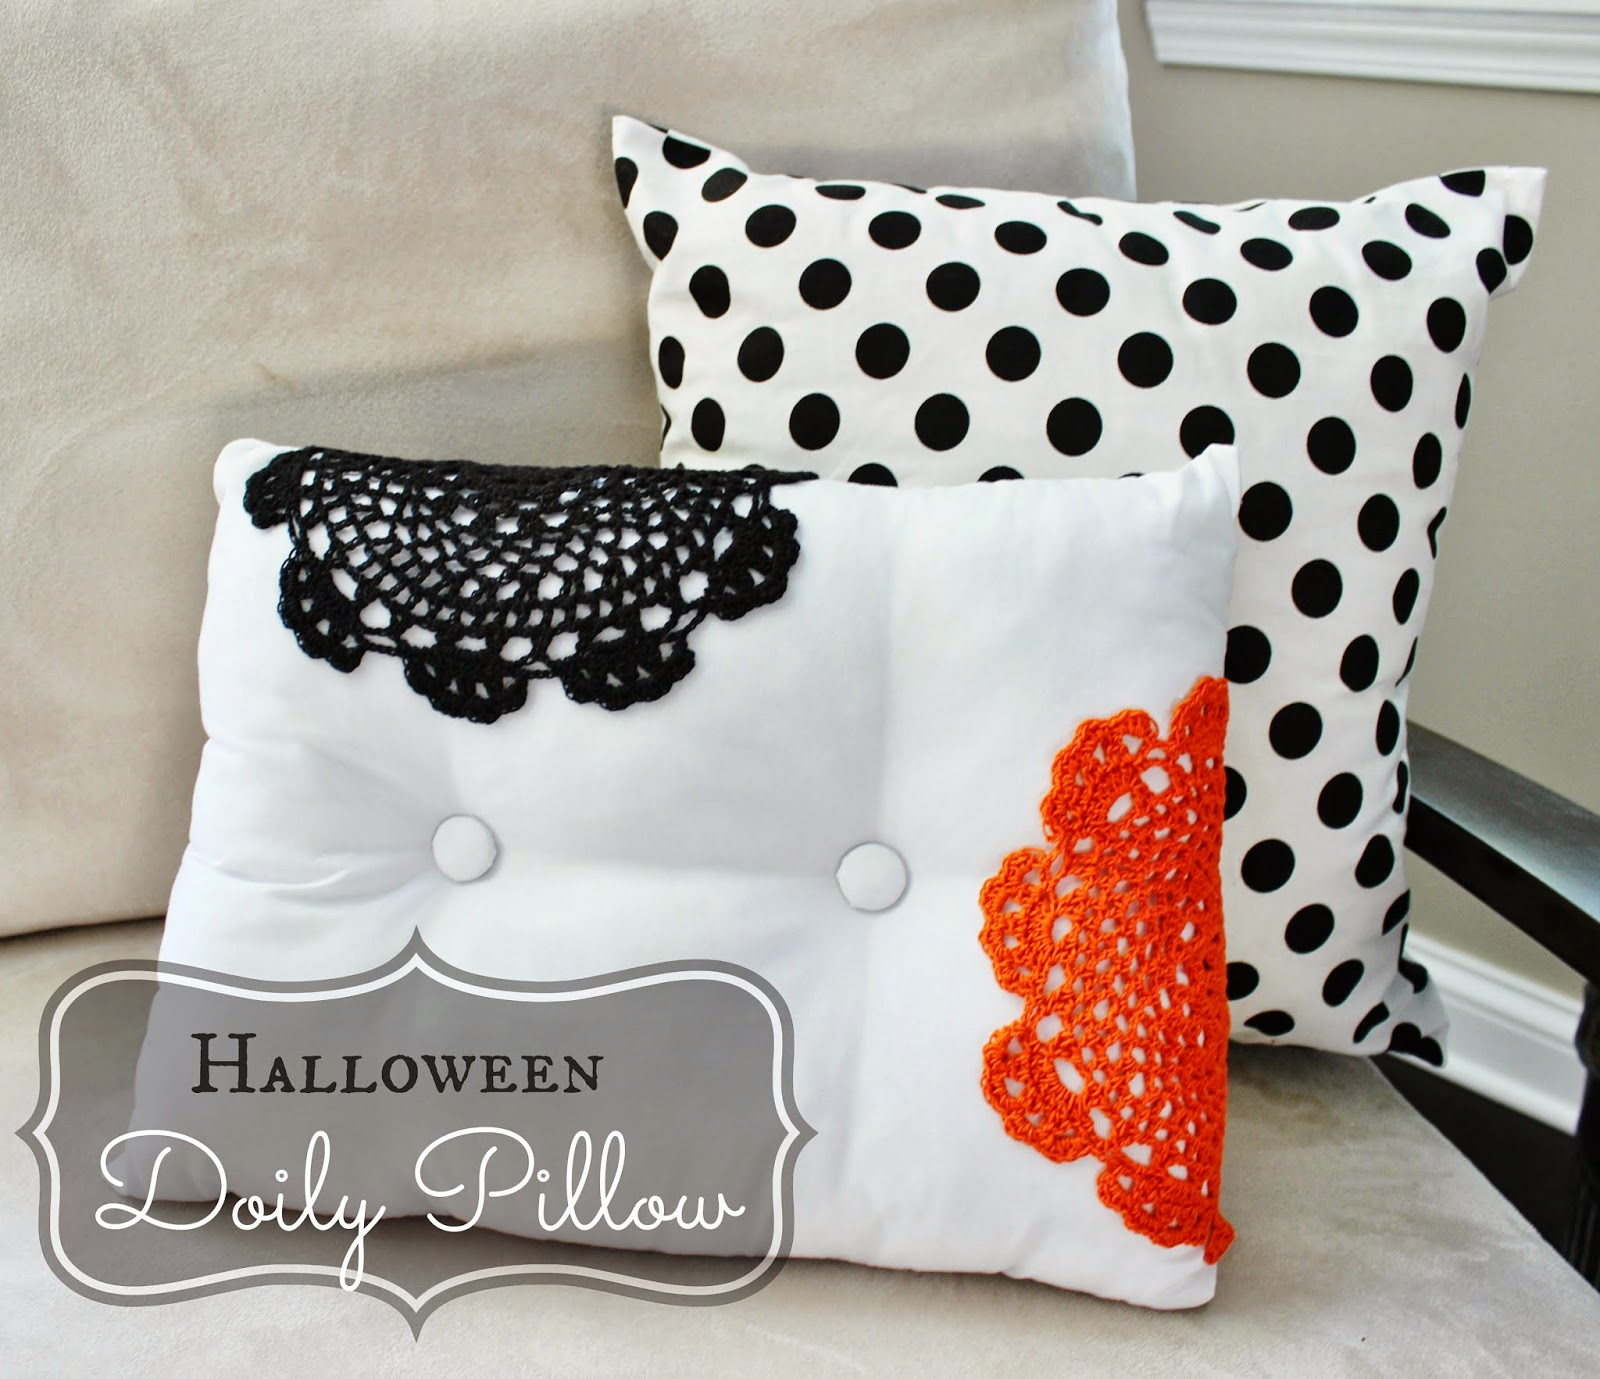 Diy Decorative Christmas Pillows : Holiday Decor: DIY Halloween Doily Pillow Delightfully Noted